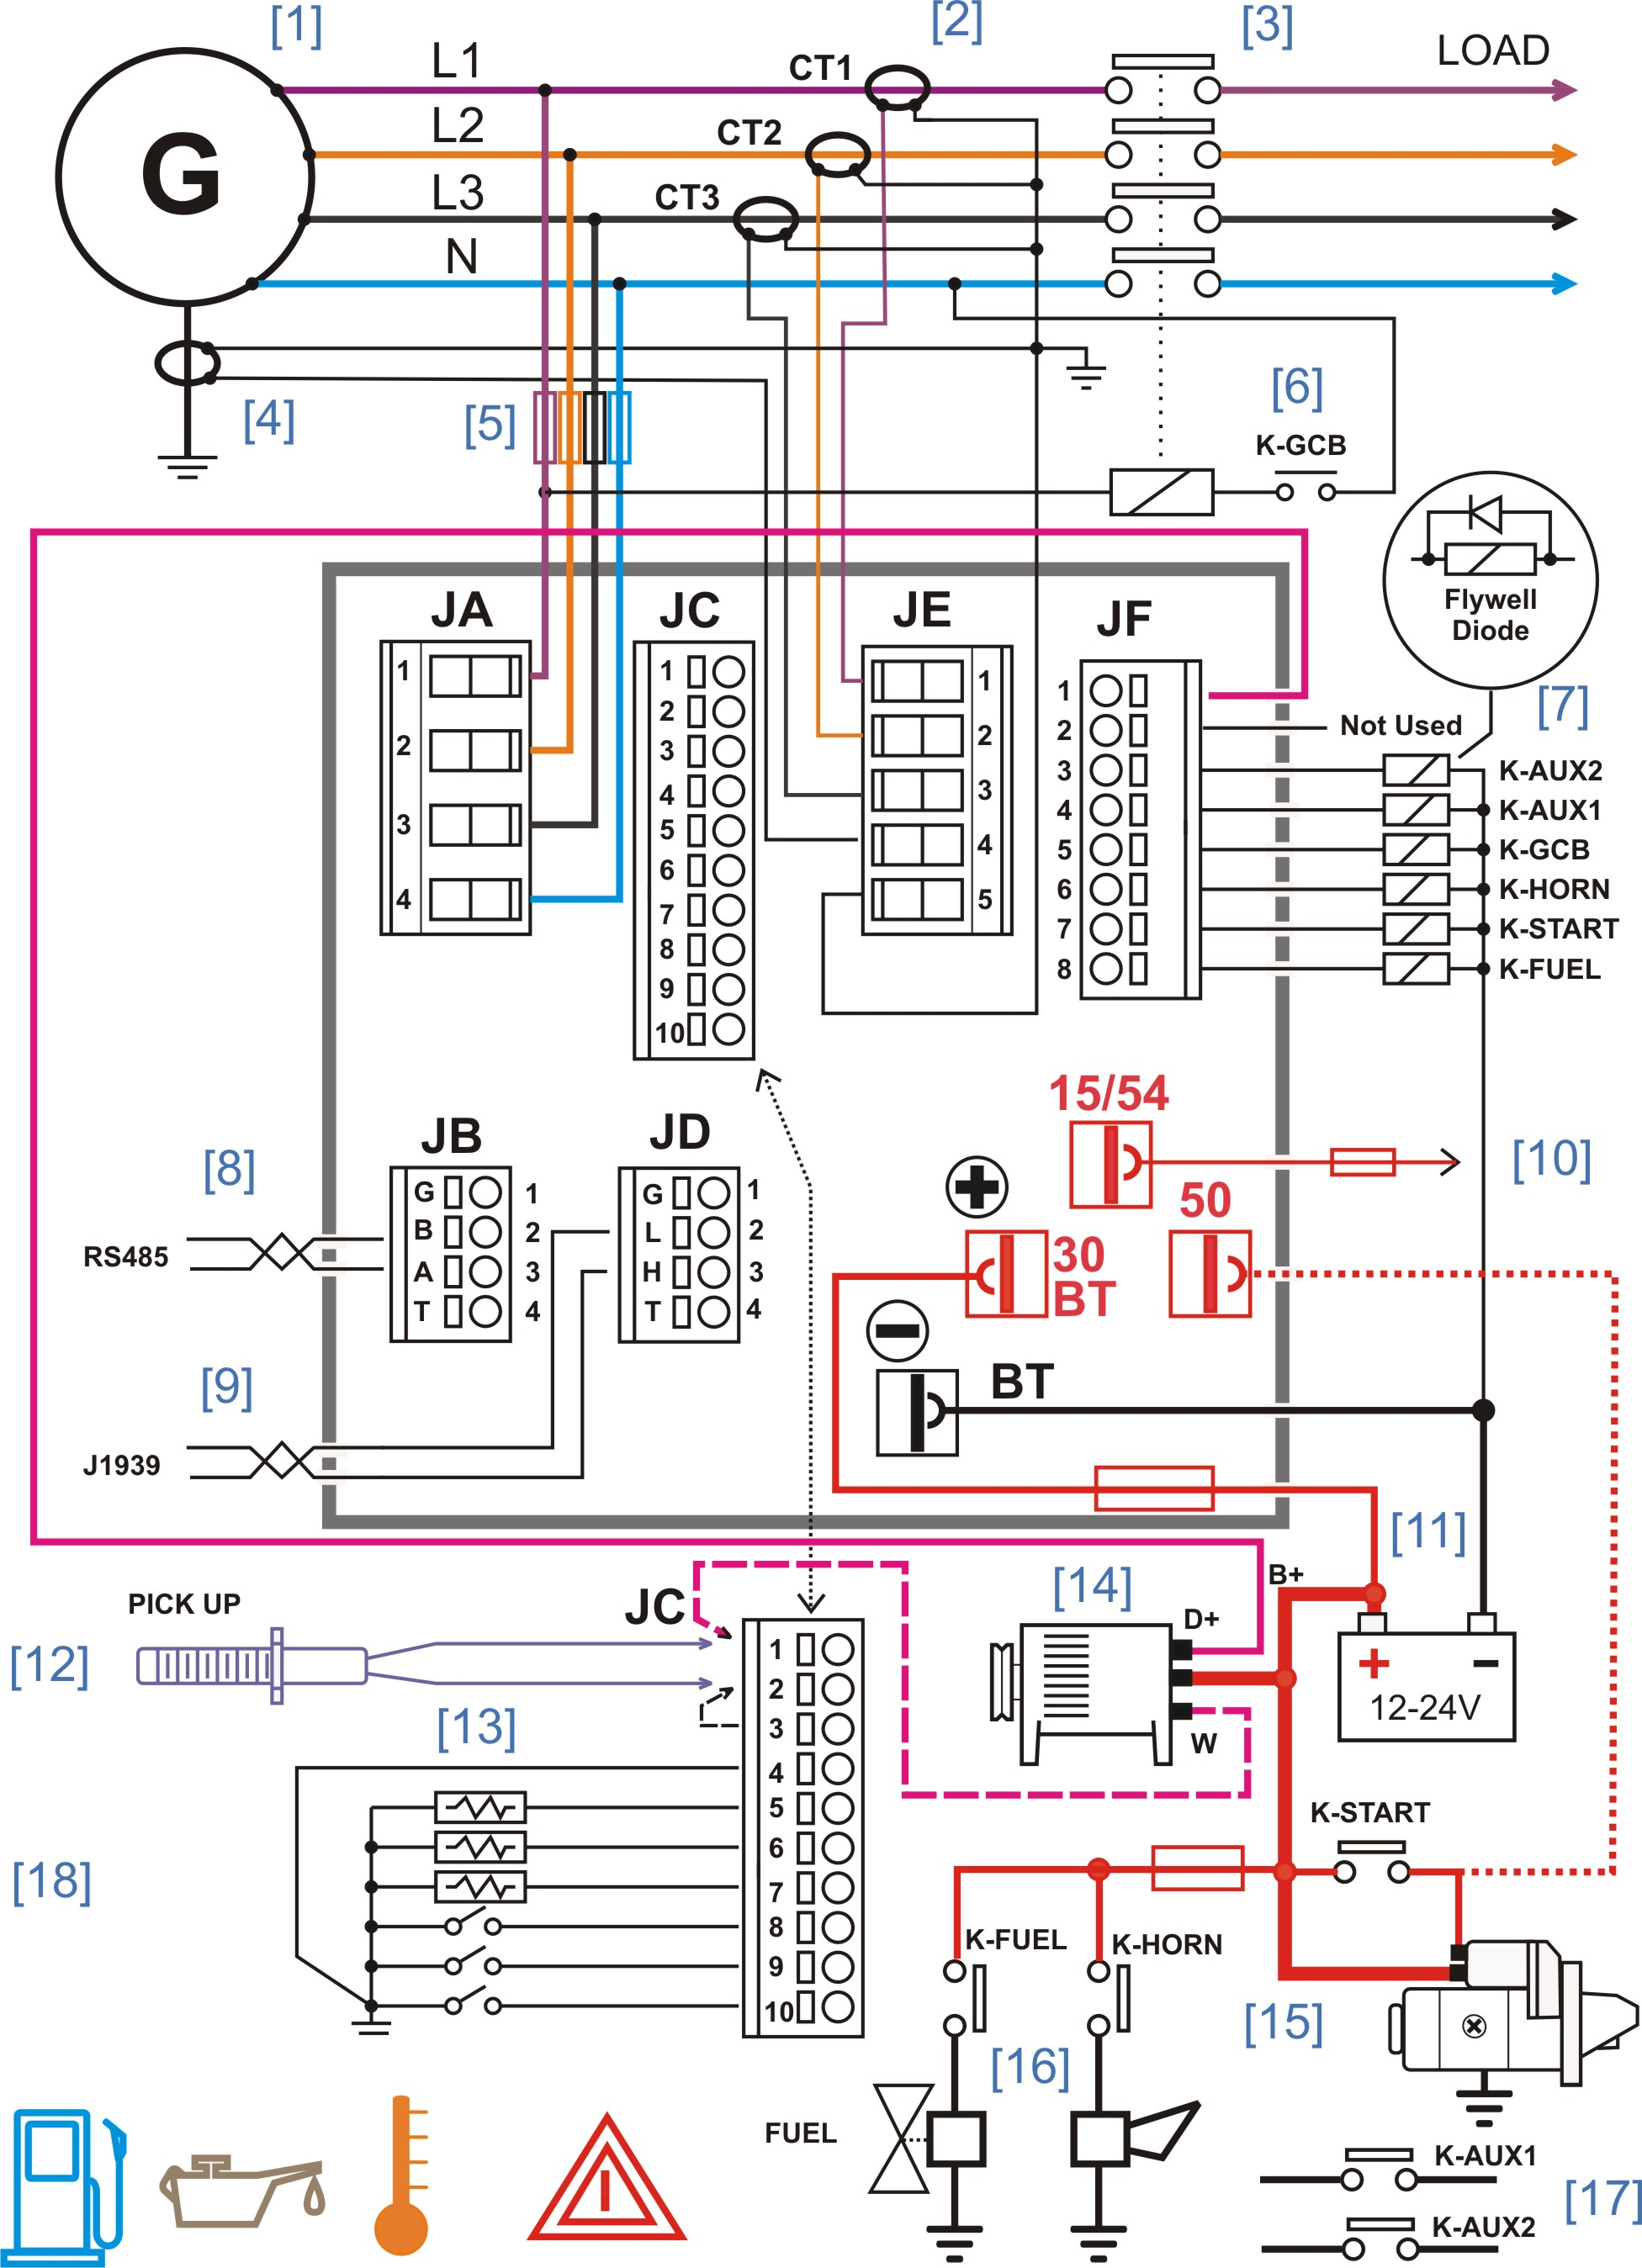 hight resolution of generator controller wiring diagram generator controllers generator wiring diagram 3 phase generator controller wiring diagram